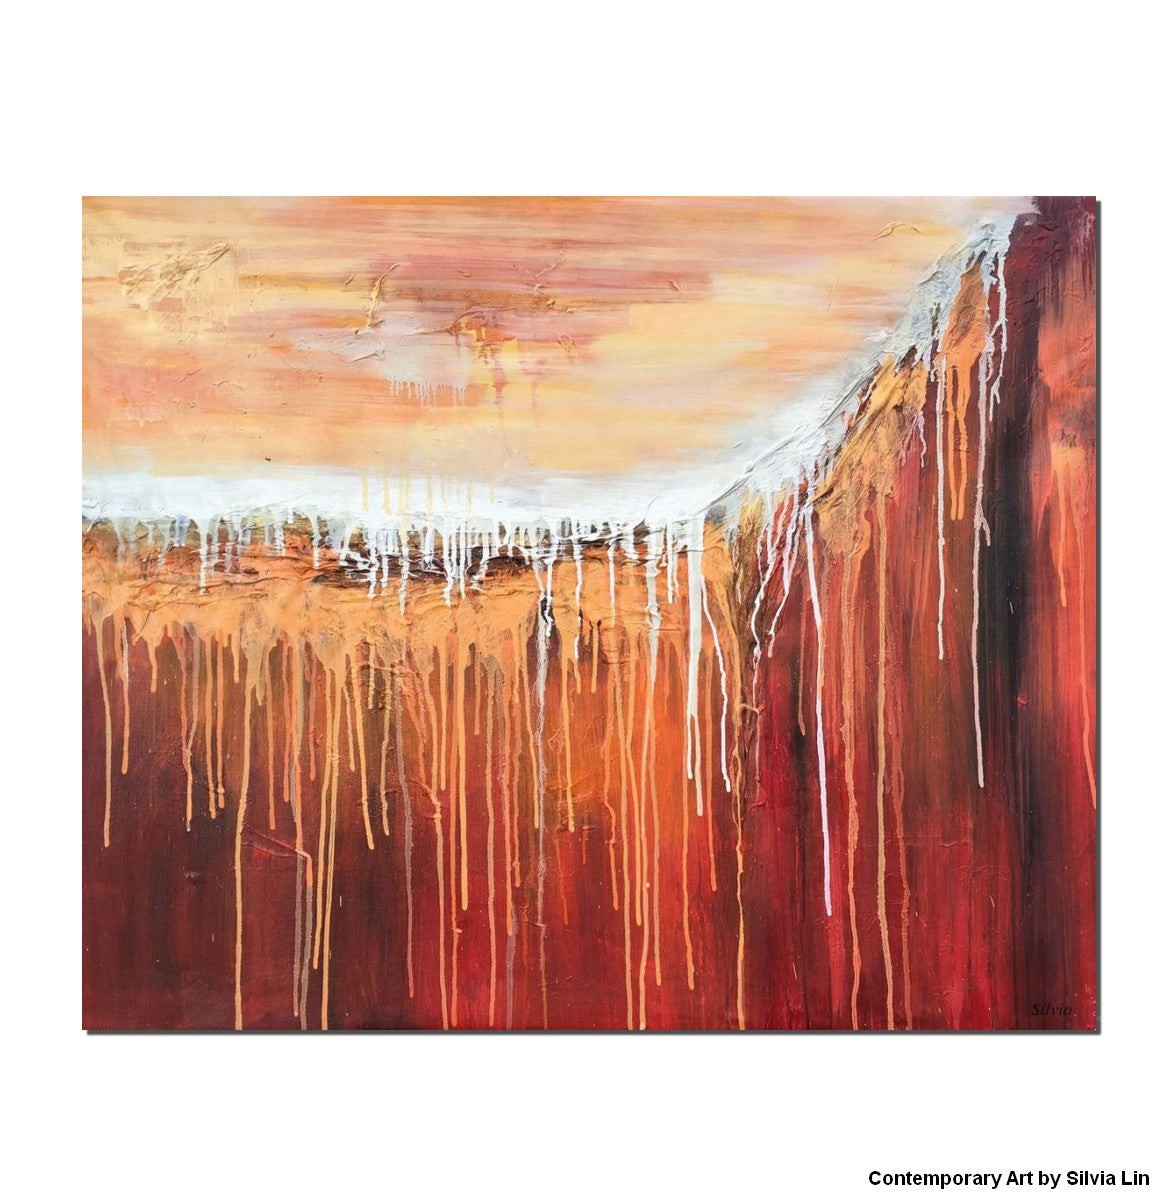 Contemporary Art, Abstract Painting, Abstract Canvas Painting, Oil Painting Abstract, Large Painting, Bedroom Art, Original Abstract Art